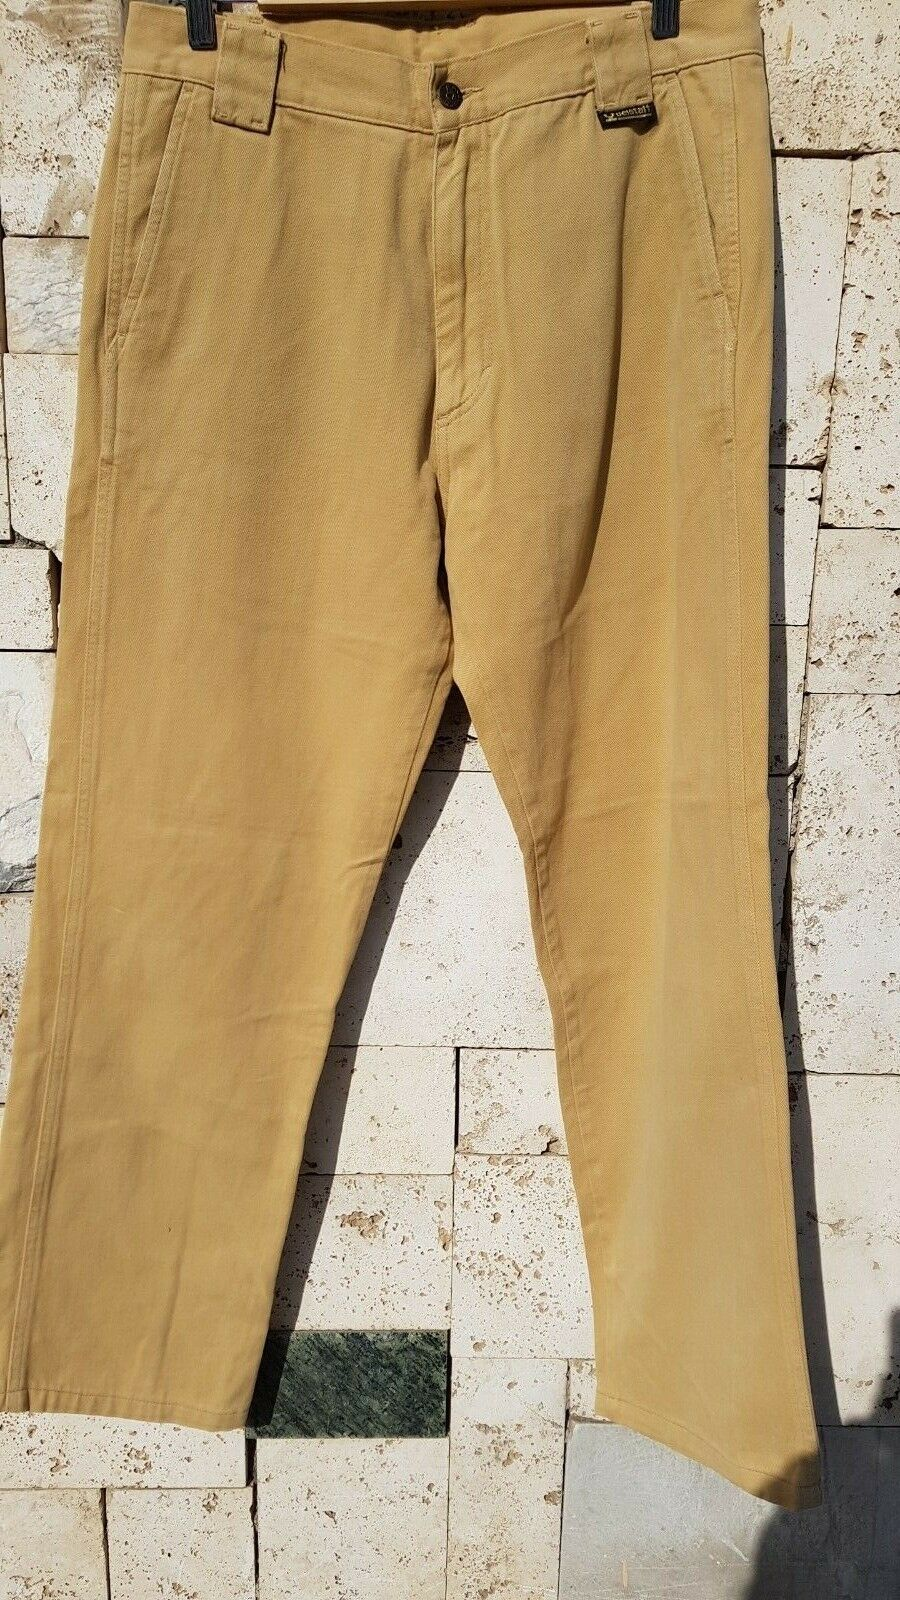 PANTALONE men BEIGE ORIGINALE 52 BELSTAFF men CAMMELLO COMODO LARGO